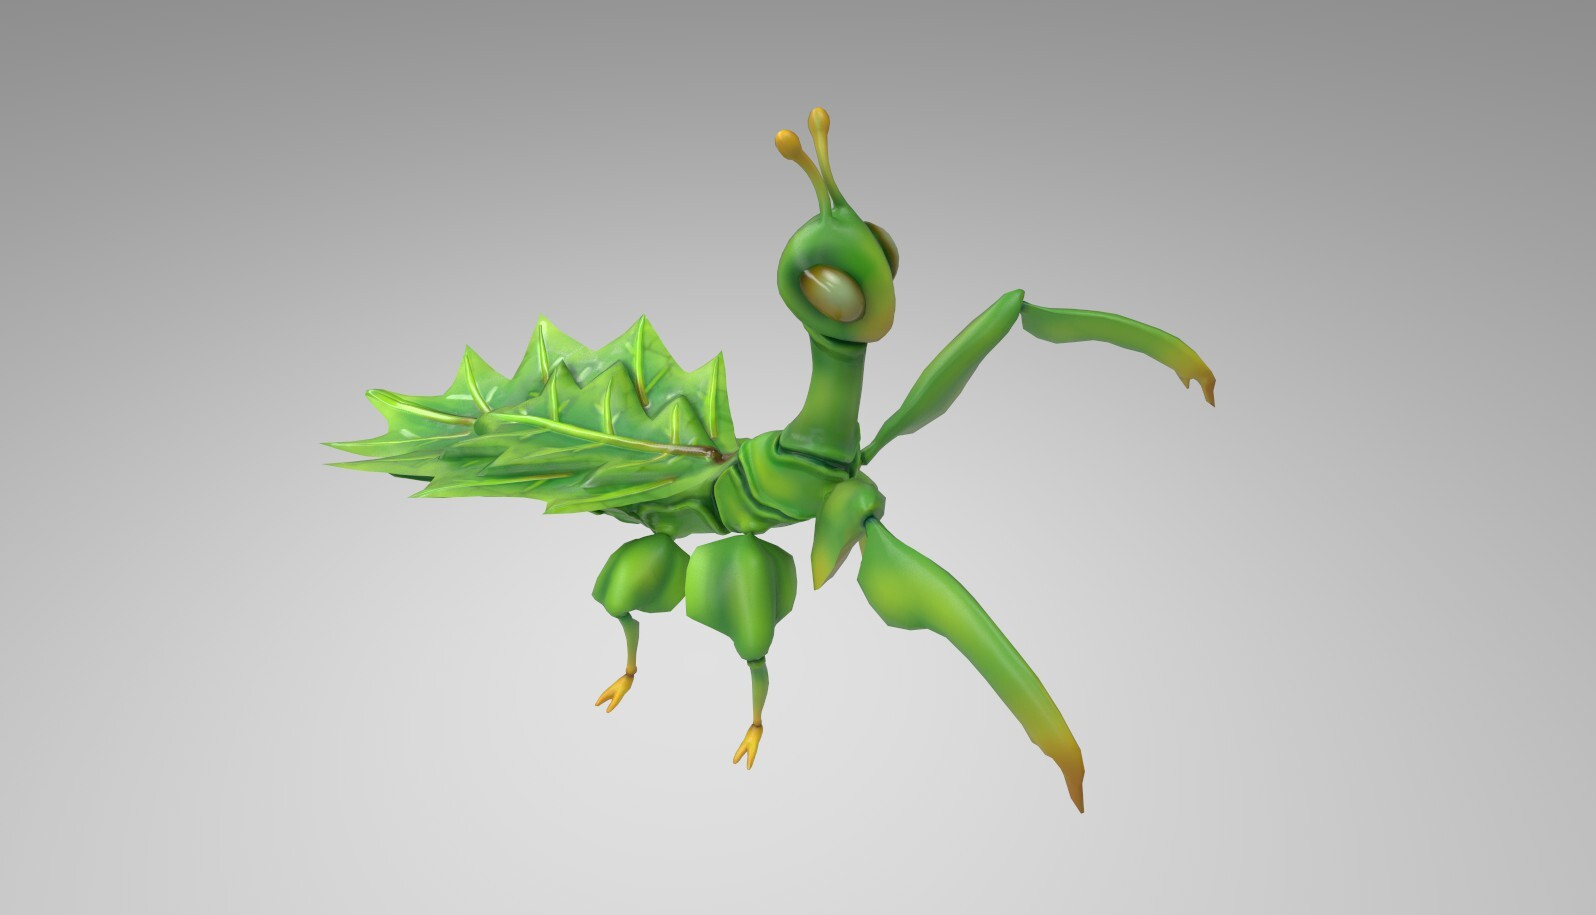 Leaf insect textured: green variant. Iray render.